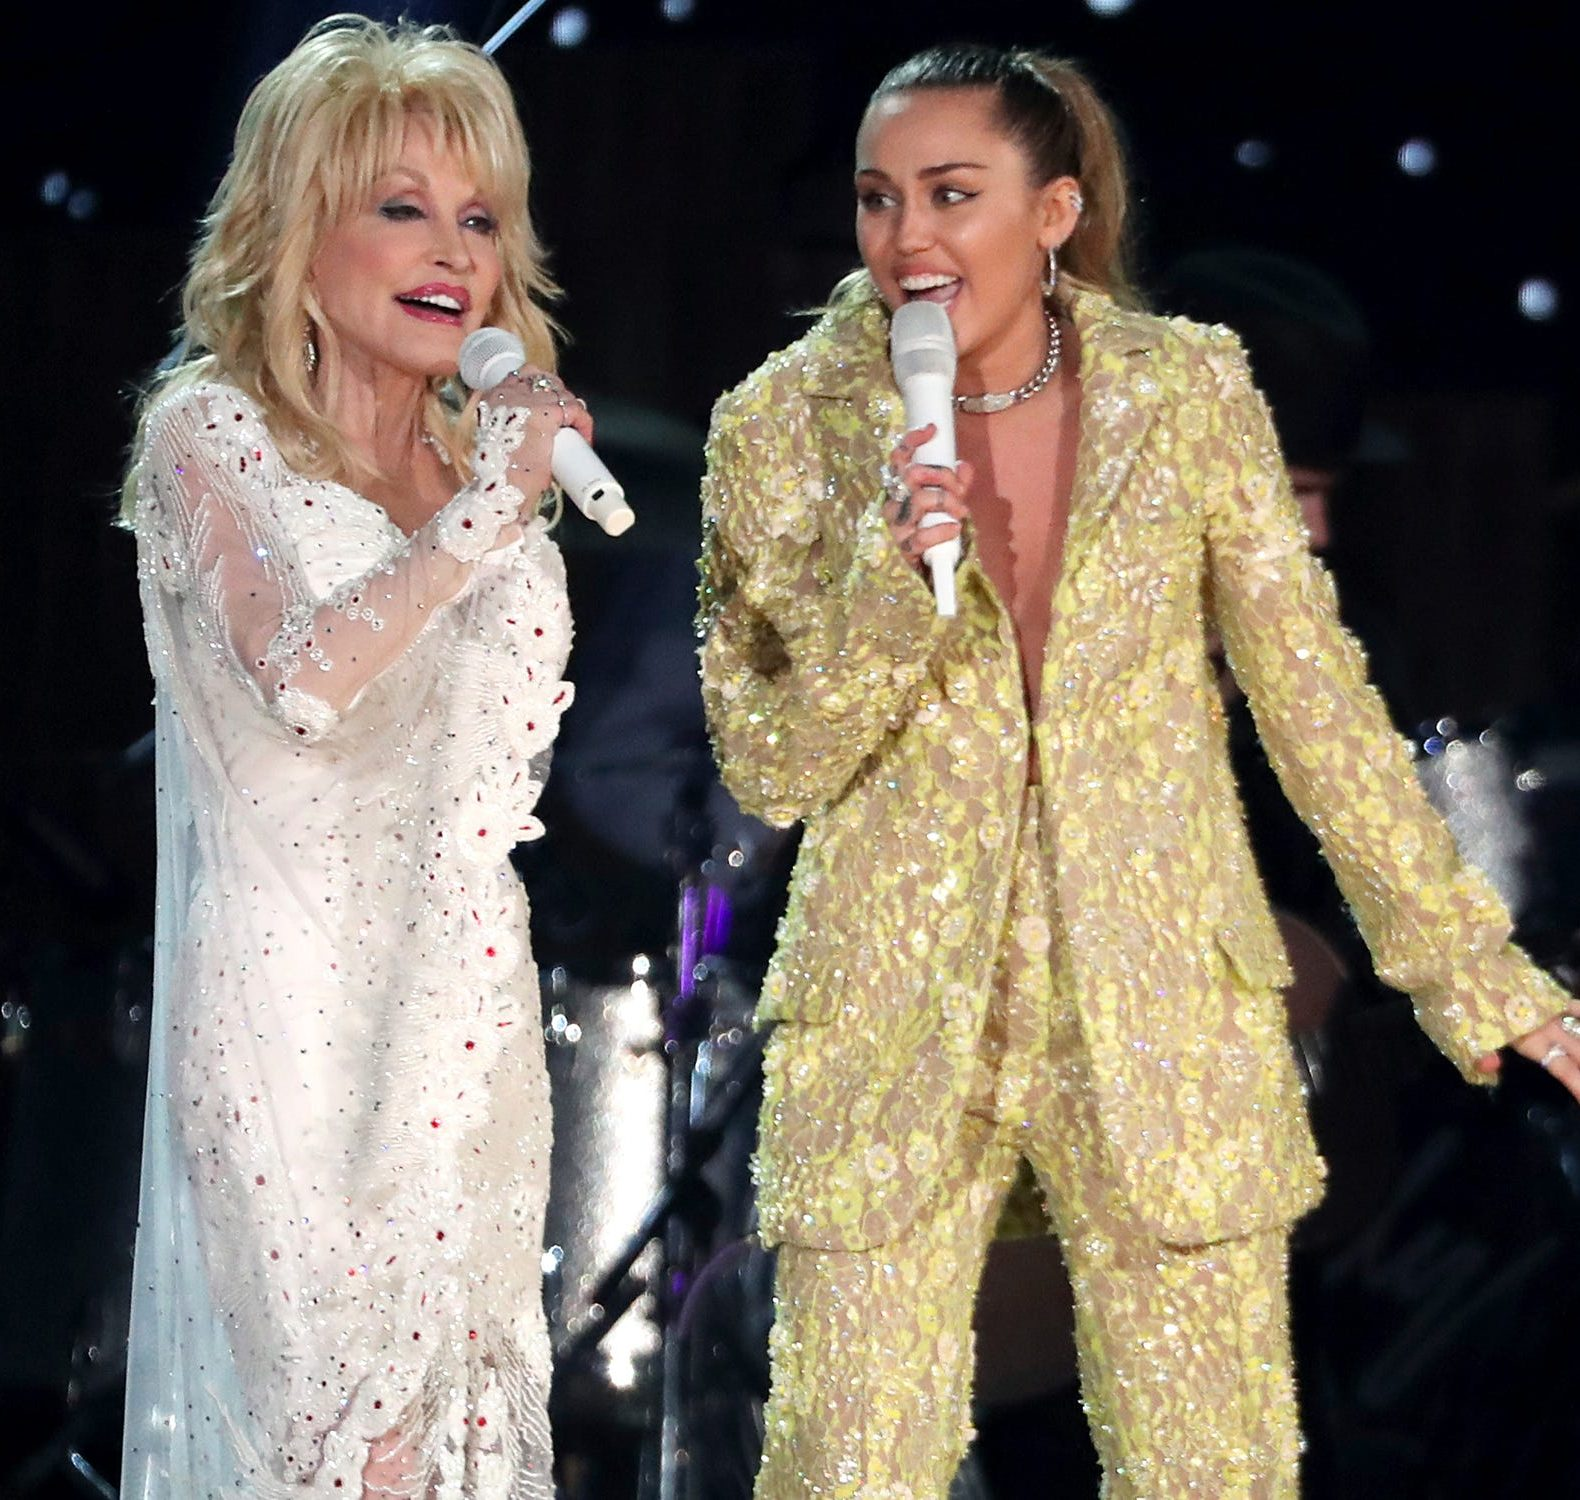 1 13 e1607943449720 Sparkling Facts About Dolly Parton, The Rhinestone Queen of Tennessee